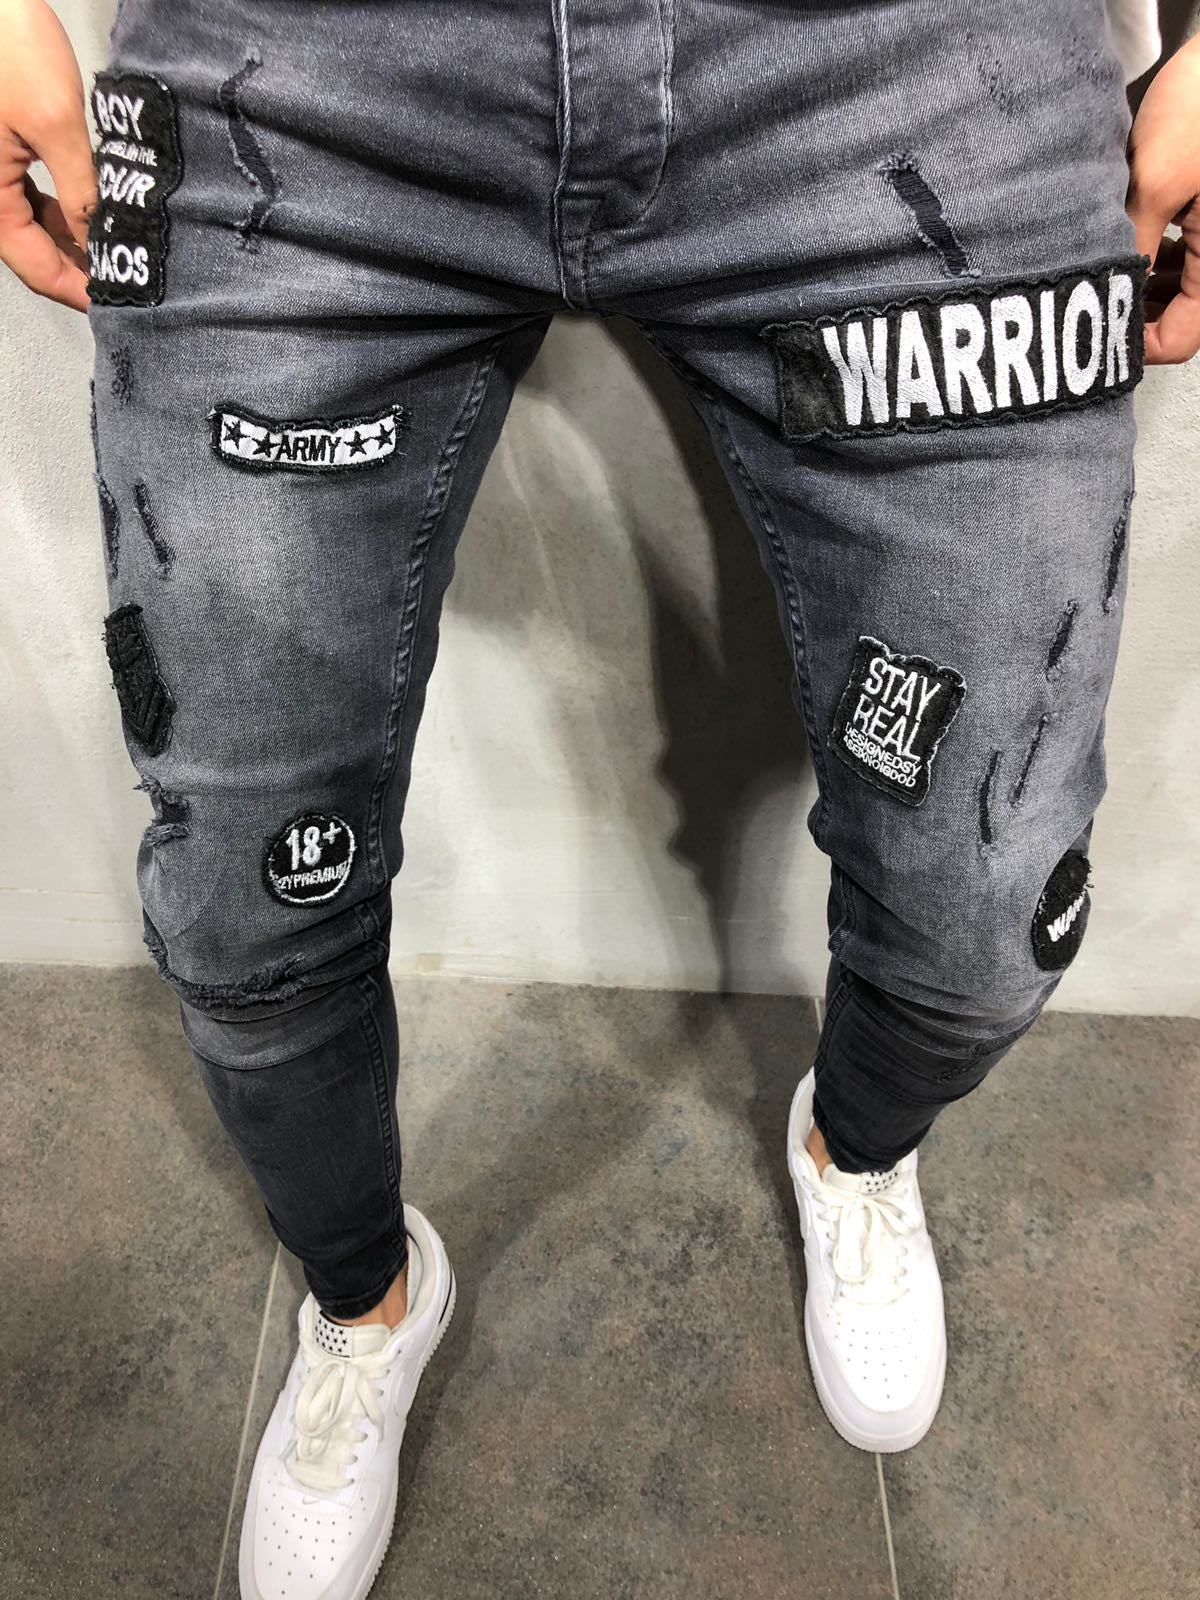 Warrior Patched Jeans - Black 3853